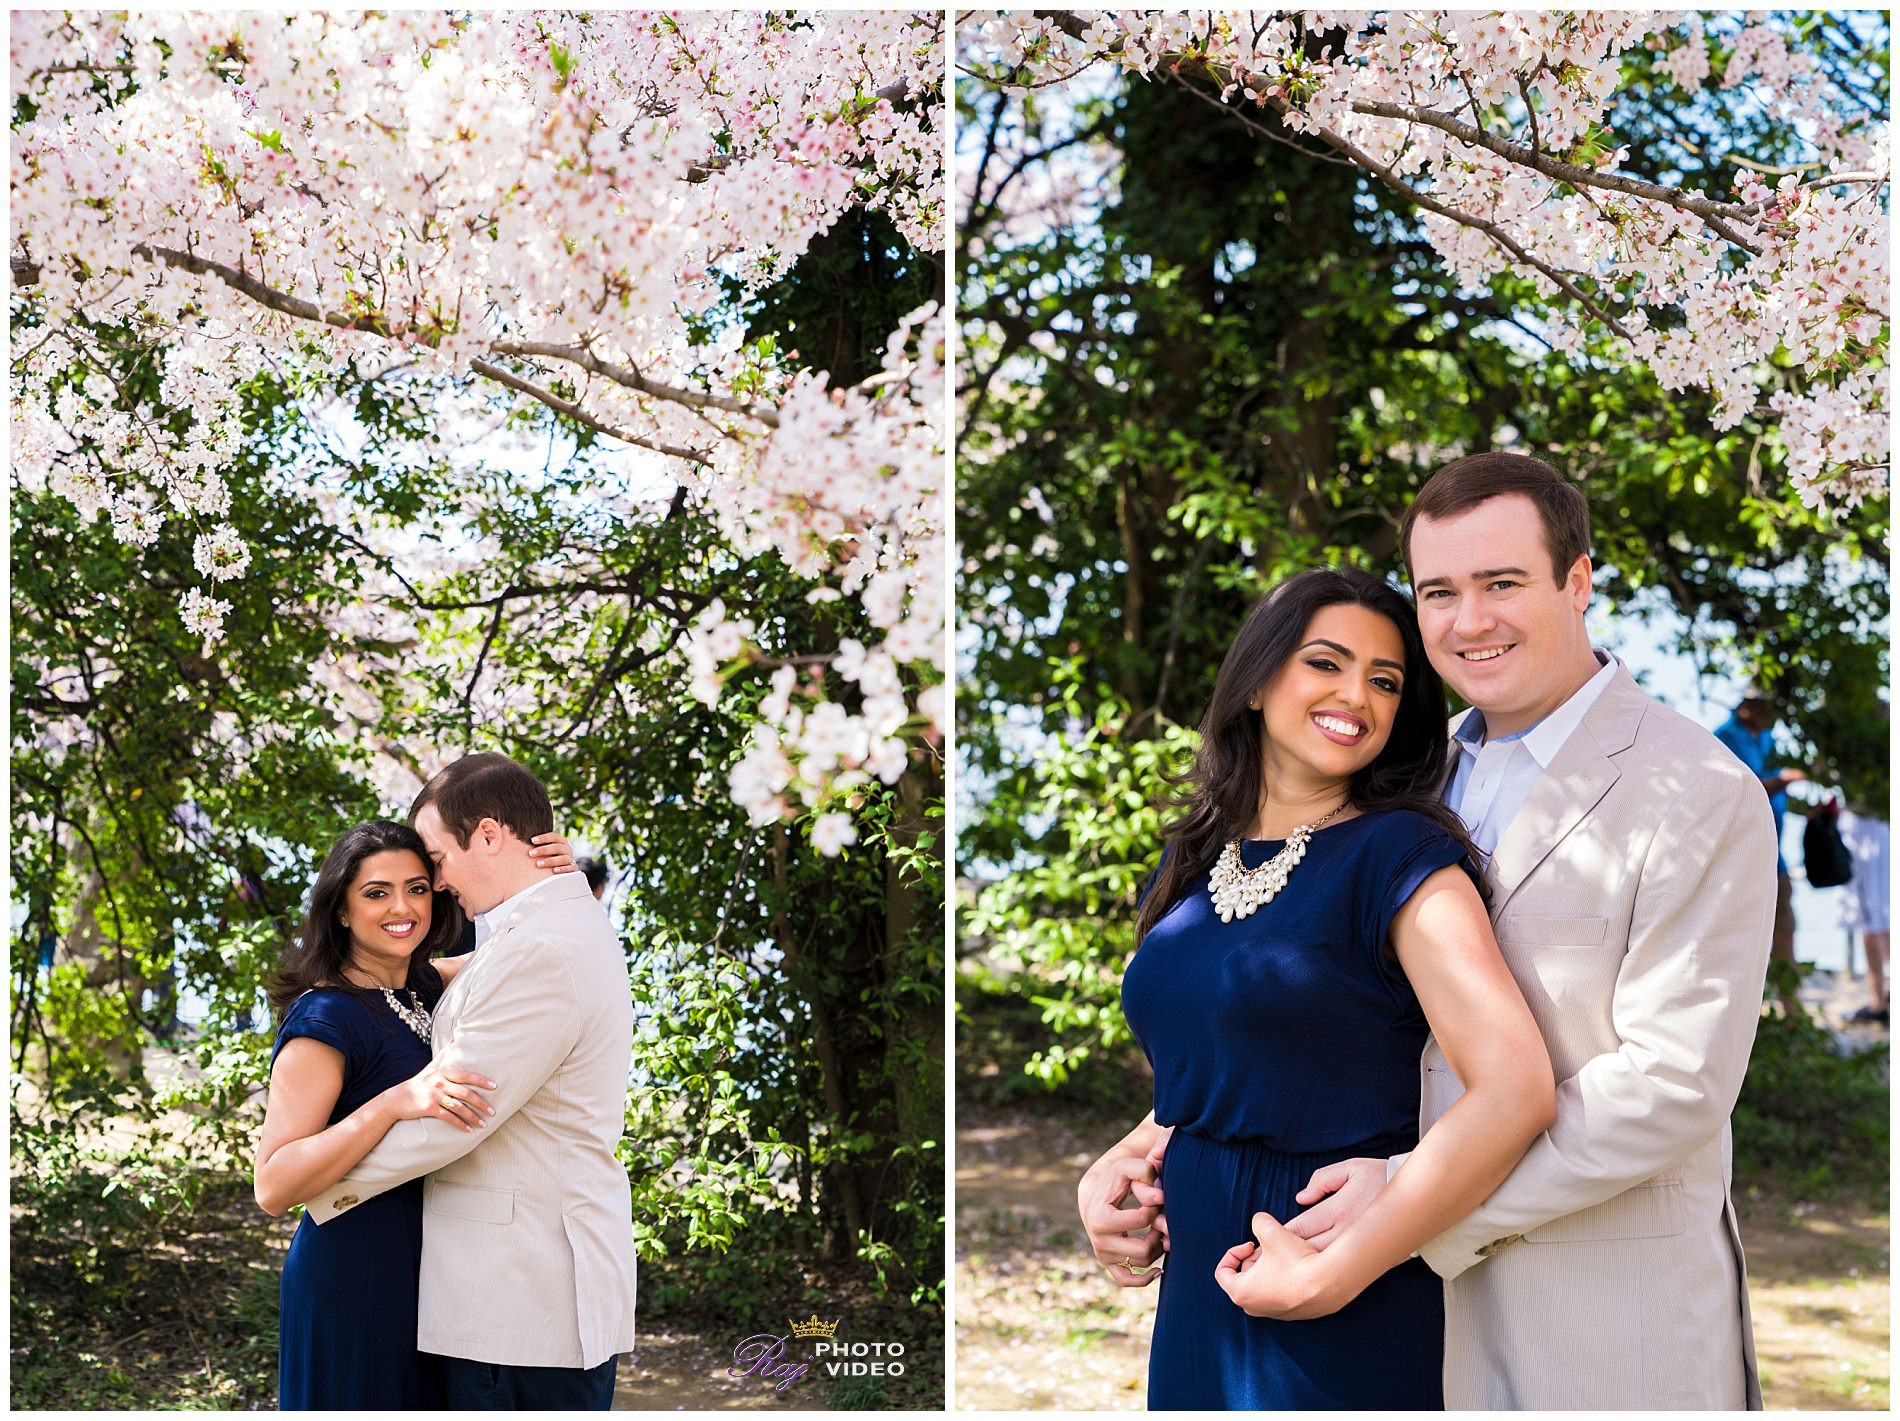 National-Cherry-Blossom-Festival-Washington-DC-Engagement-Shoot-Aditi-Peter-1.jpg